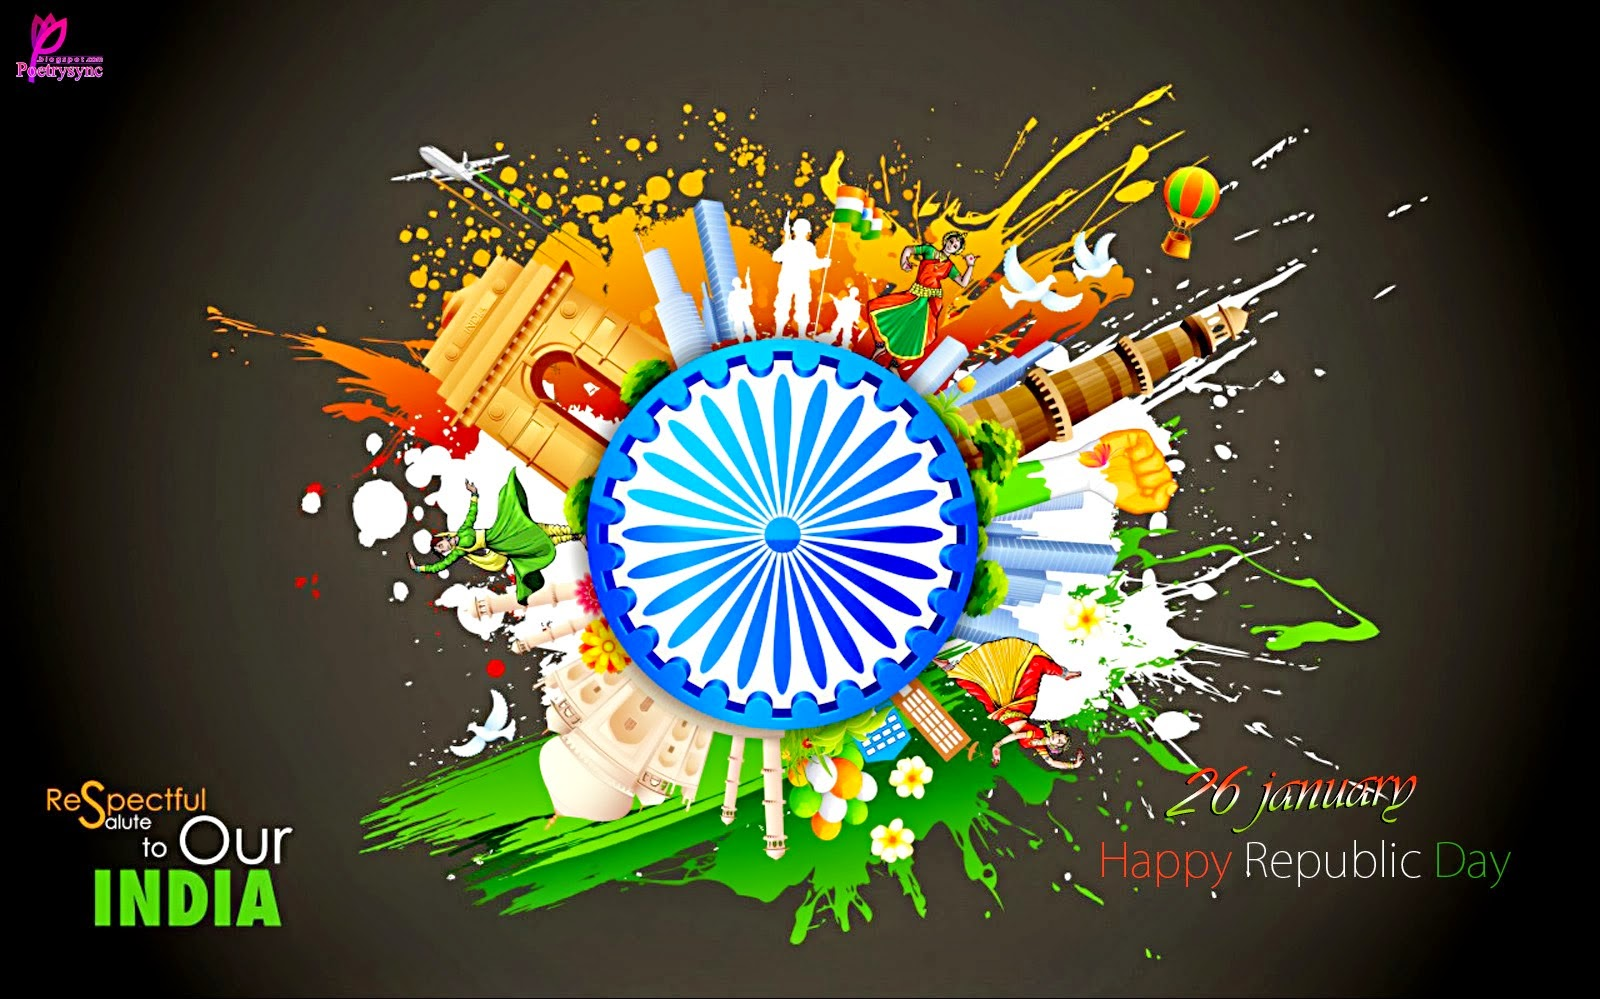 2015 india republic day jan 26 greetings messages wallpaper whatsapp 2015 india republic day jan 26 greetings messages wallpaper whatsapp facebook sms quotes quotes m4hsunfo